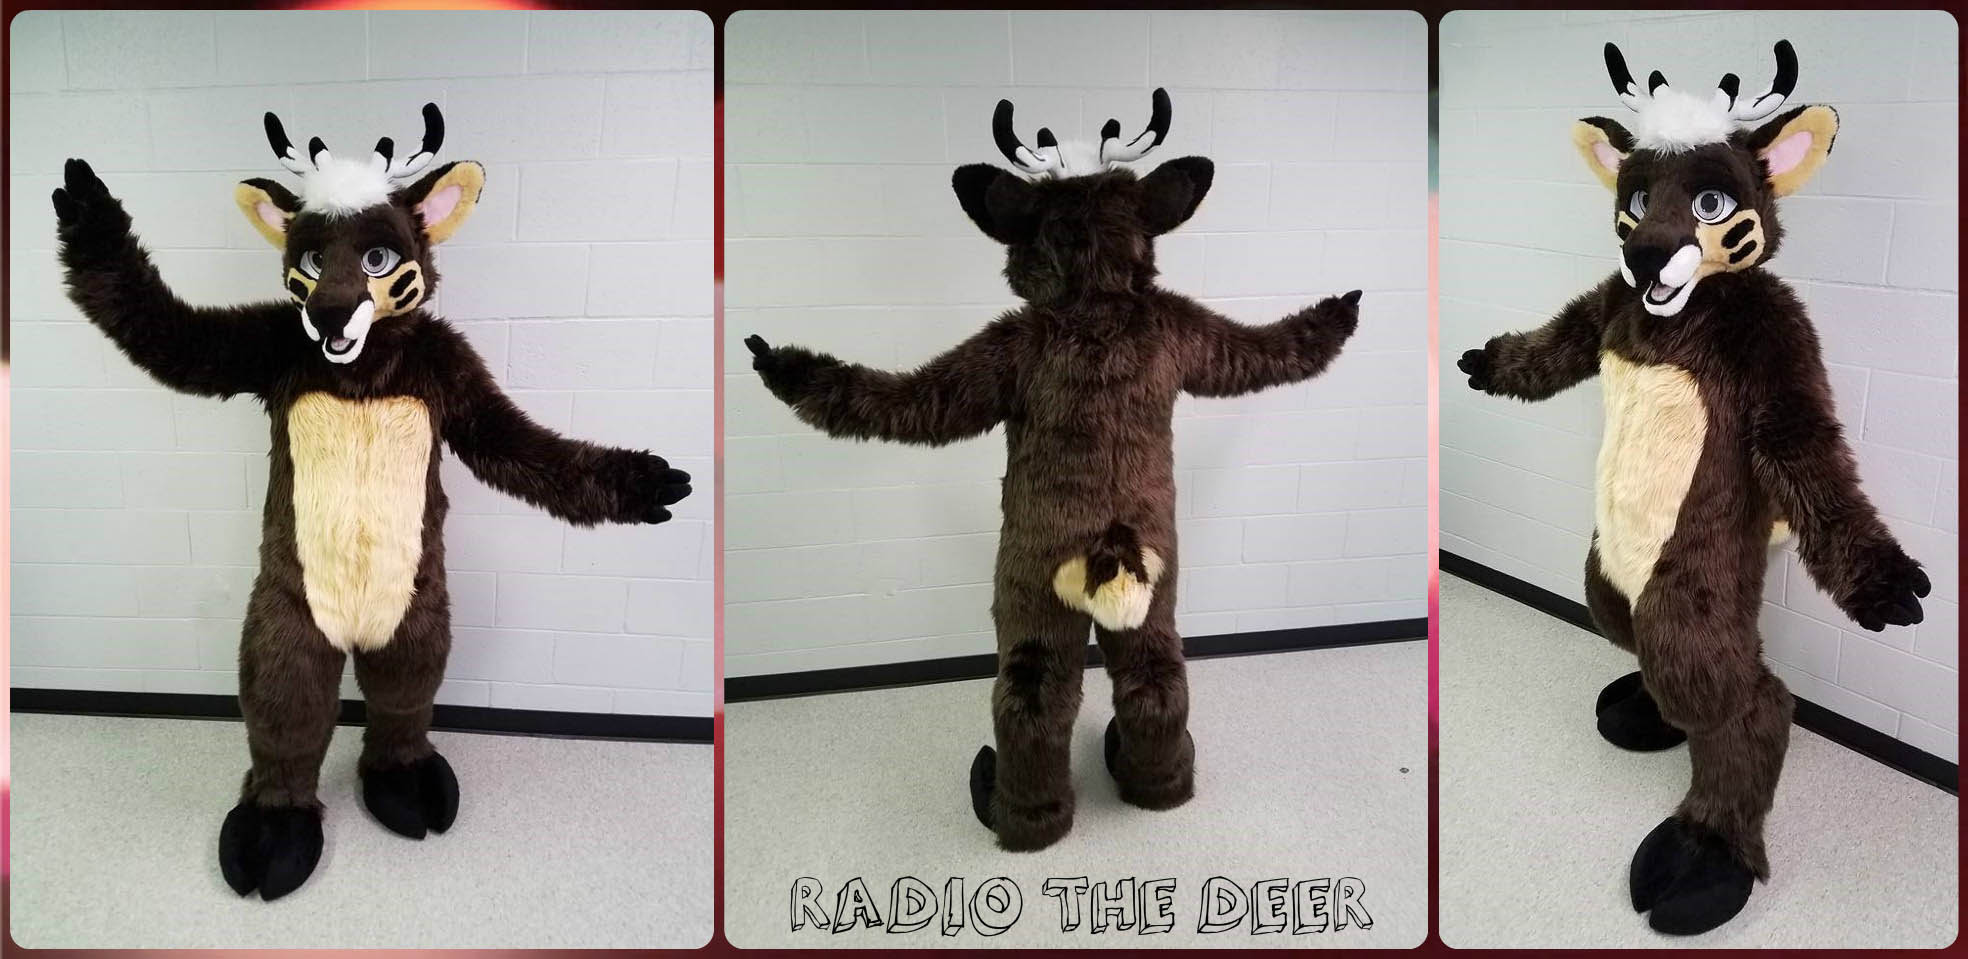 [YES] Radio Deer Fullsuit by Coffee Costumes